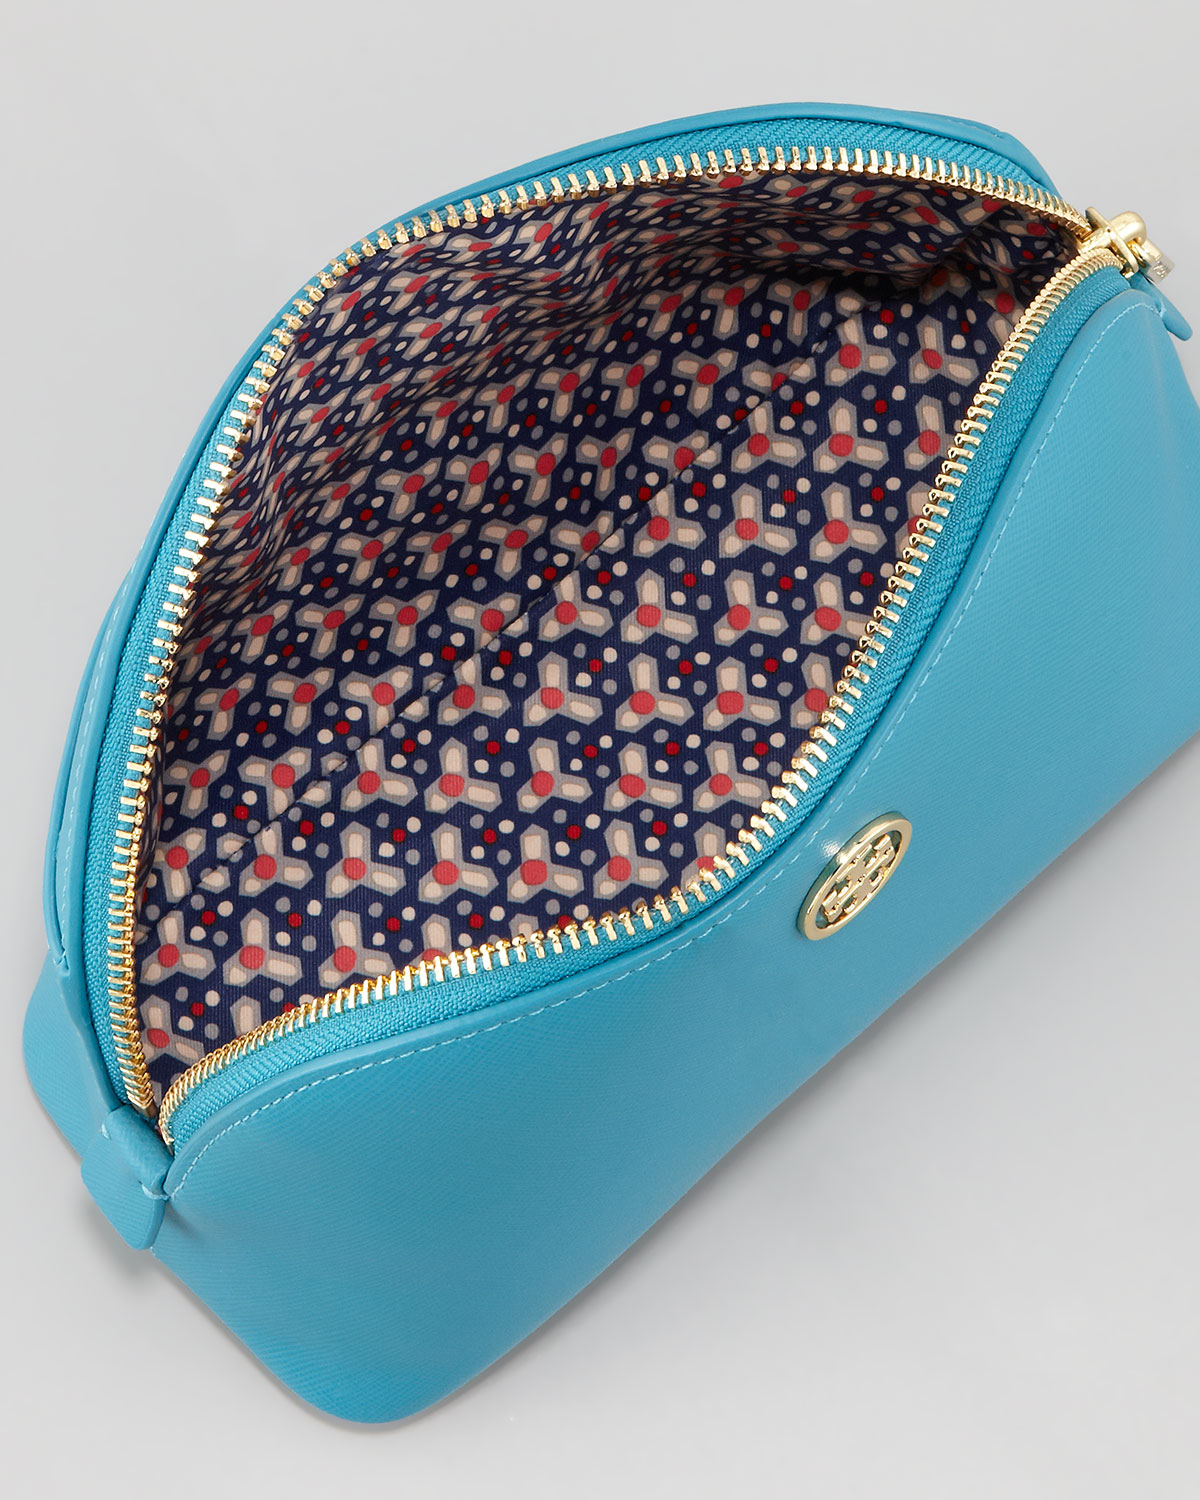 5a12c62b737a ... promo code for lyst tory burch robinson leather cosmetic bag electric  eel in blue 689ed 3318d